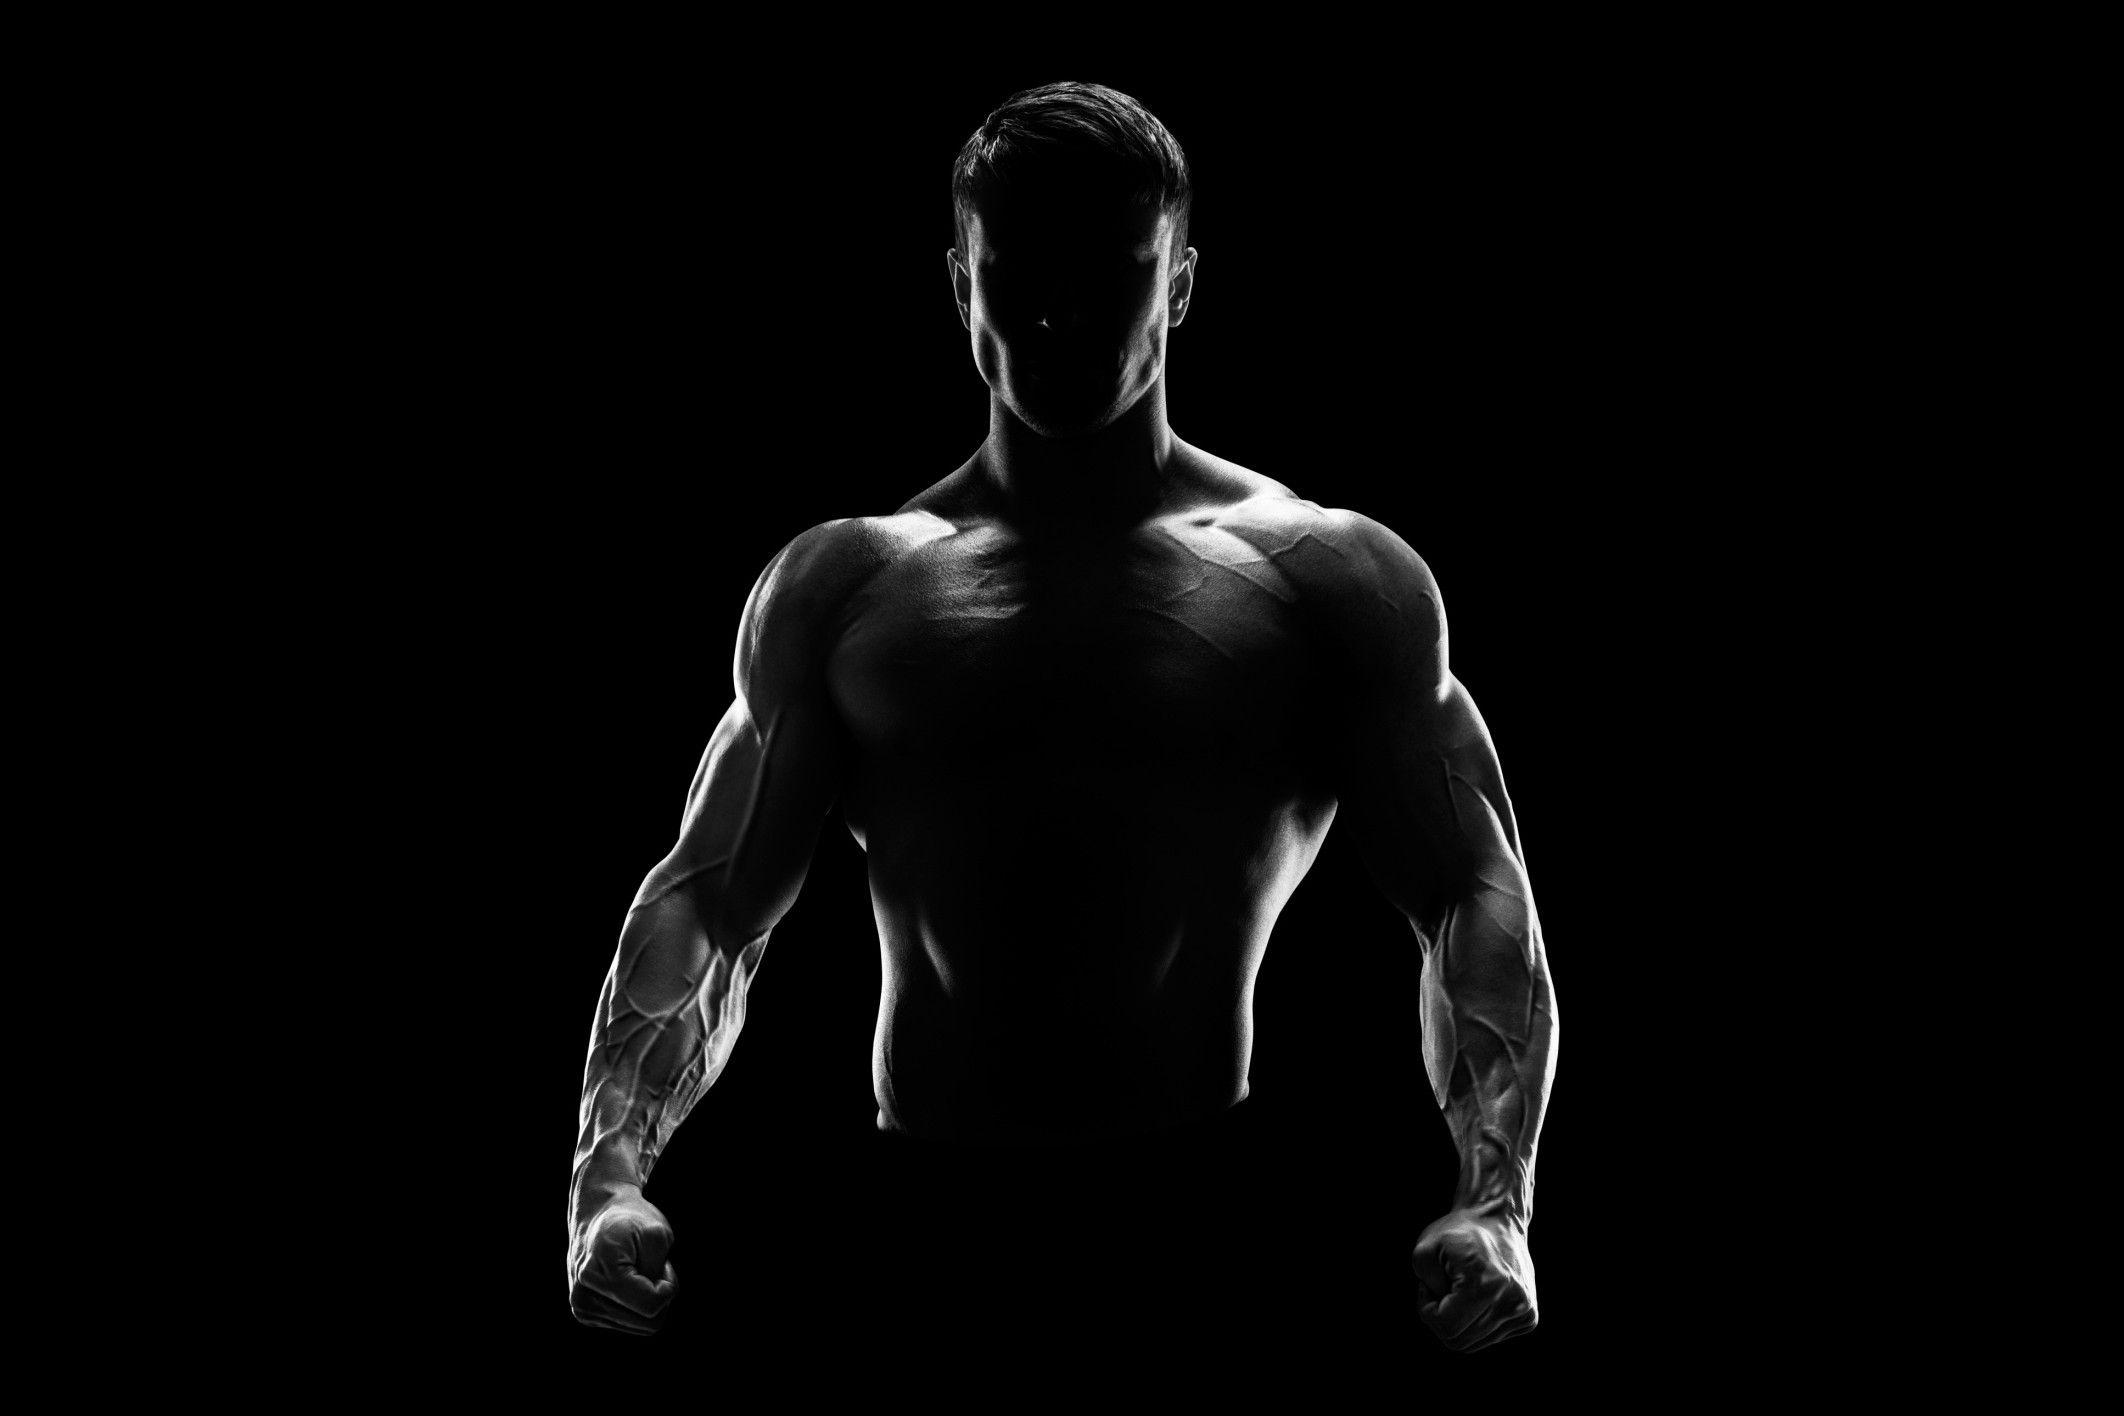 Man Fitness Wallpapers Free Pictures On Greepx